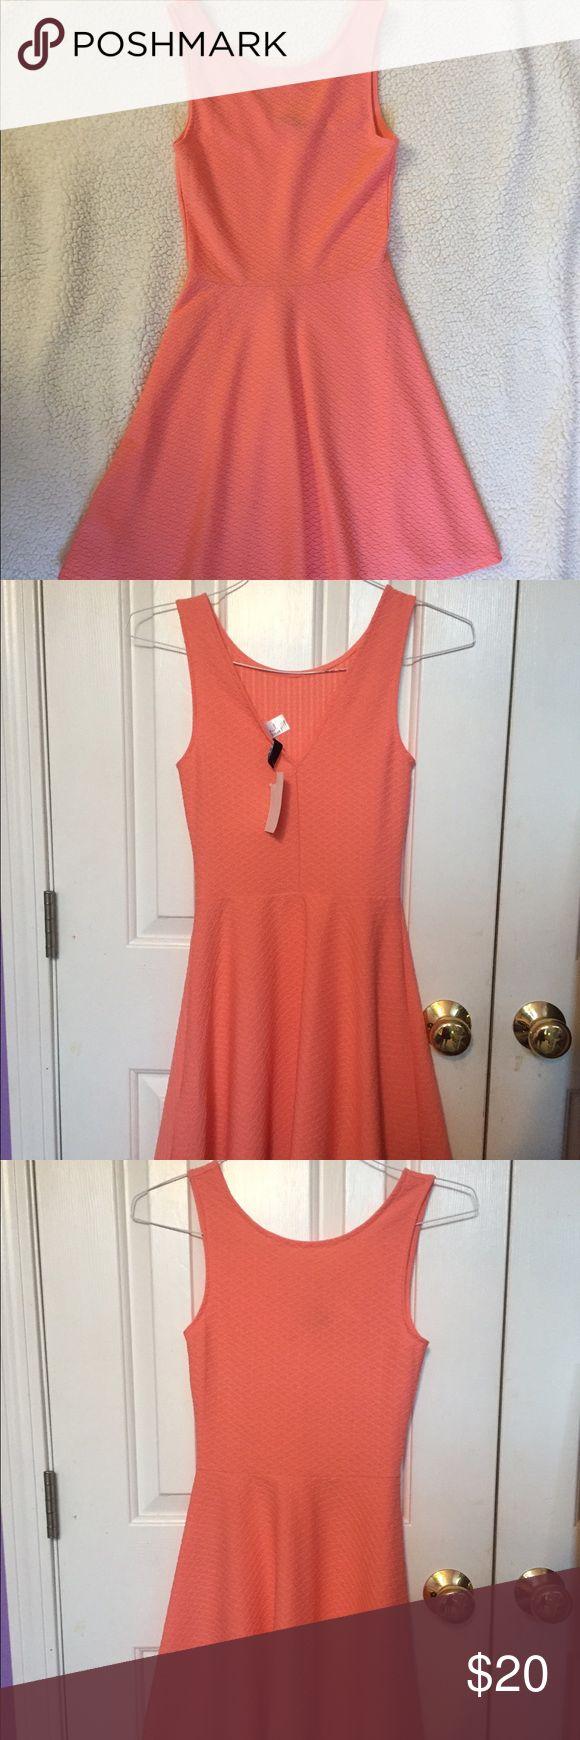 Coral Cocktail Dress This dress is perfect for any summer occasion! Can dress it up or dress it down. Never worn, tags still on it. H&M Dresses